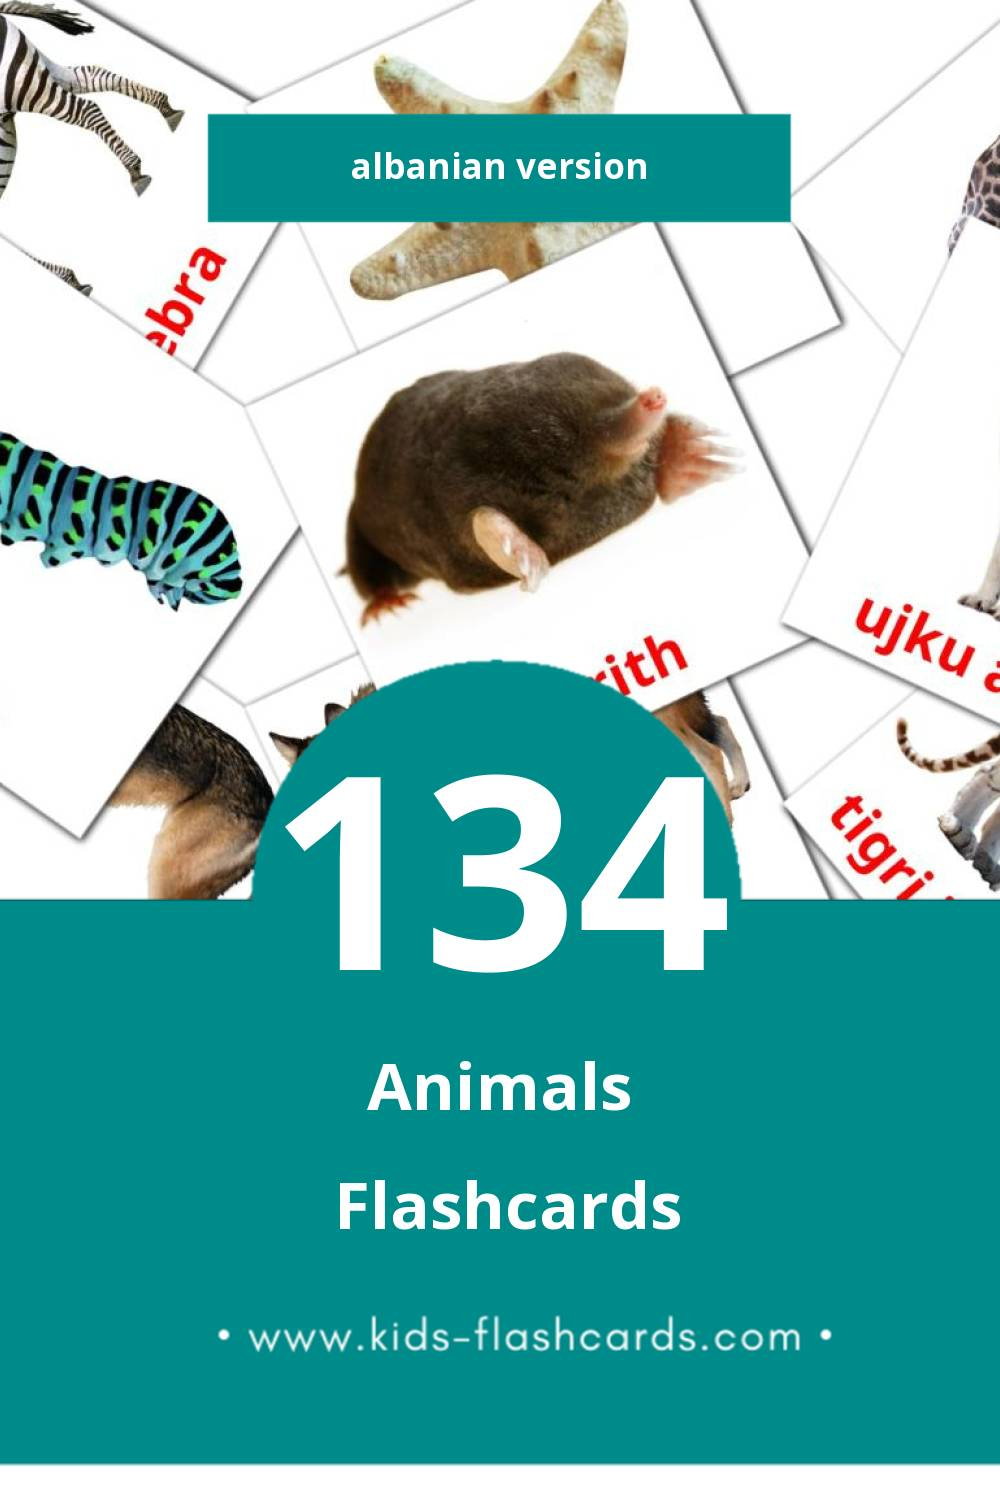 Visual Animales del artico Flashcards for Toddlers (134 cards in Albanian)